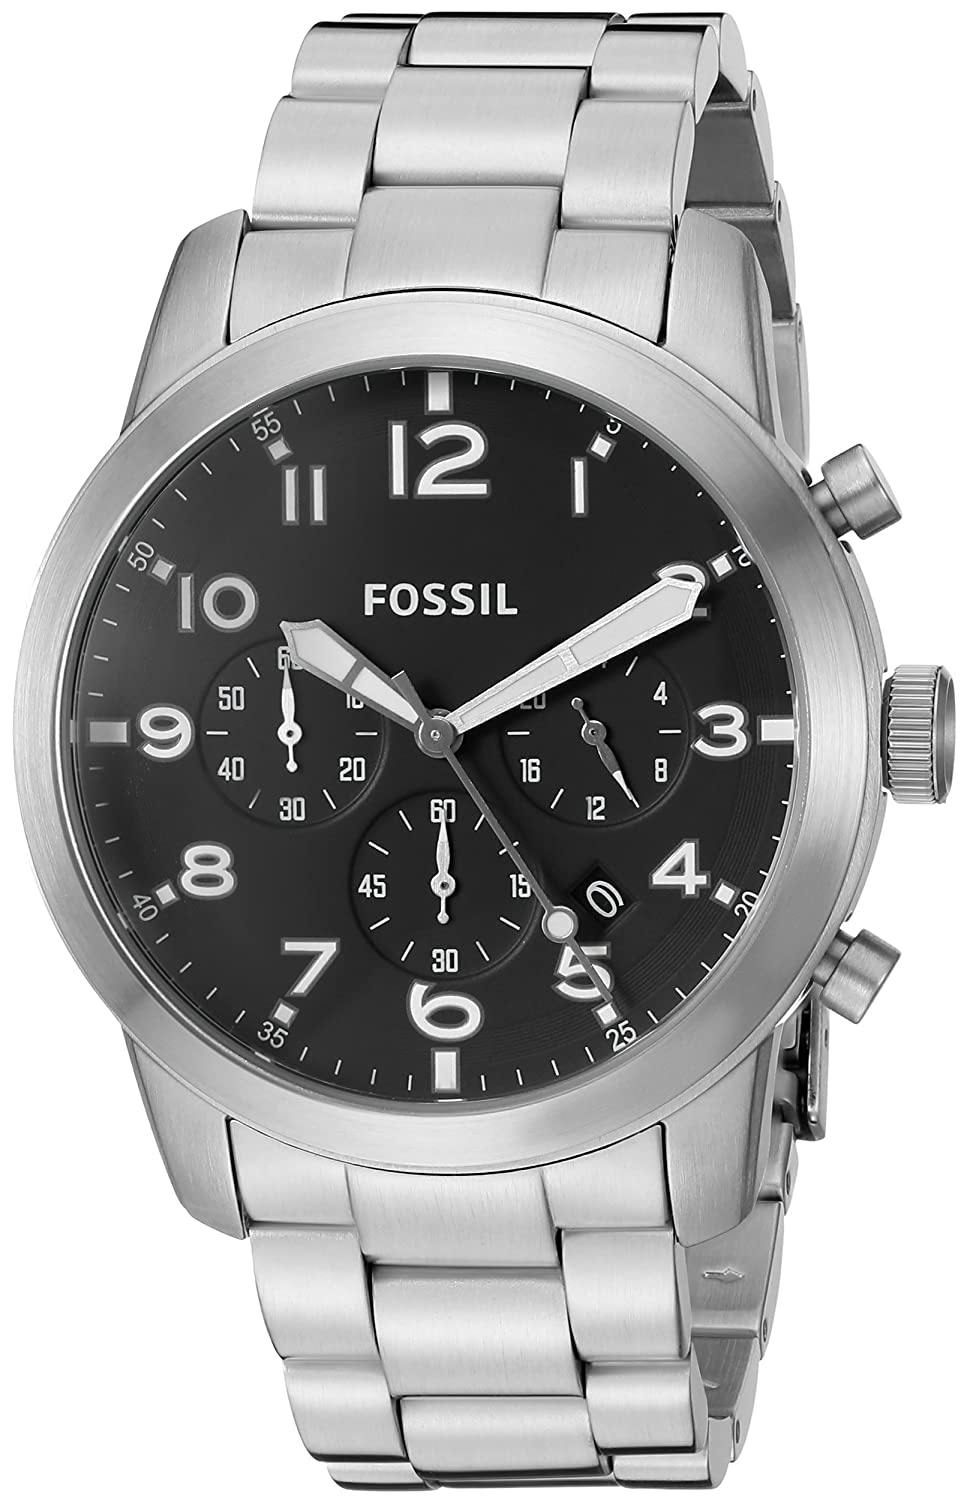 Amazon.com: Fossil Mens FS5141 Pilot 54 Chronograph Stainless Steel Watch: Watches